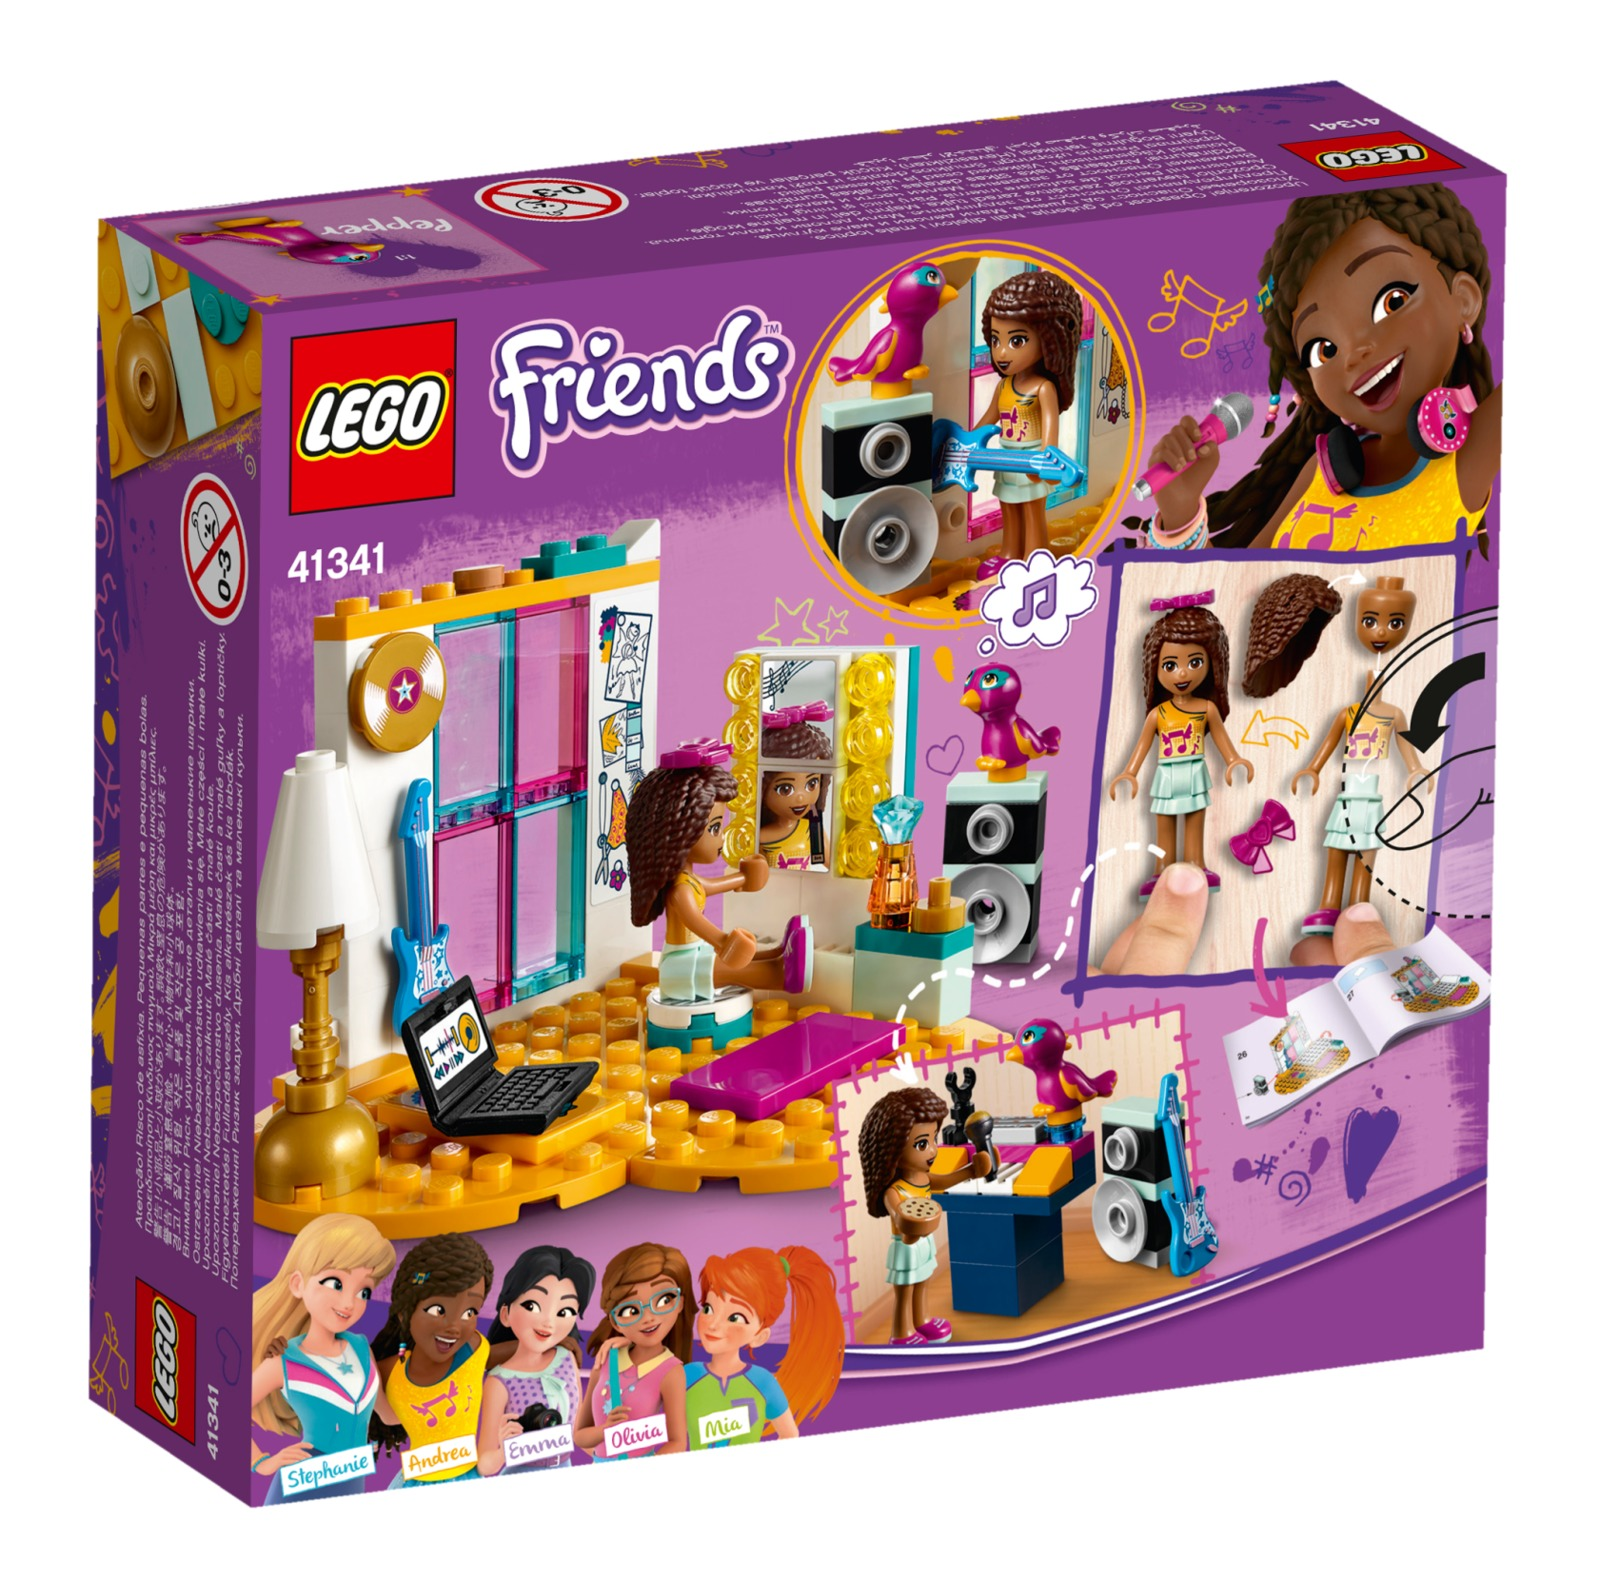 LEGO Friends - Andrea's Bedroom (41341) image